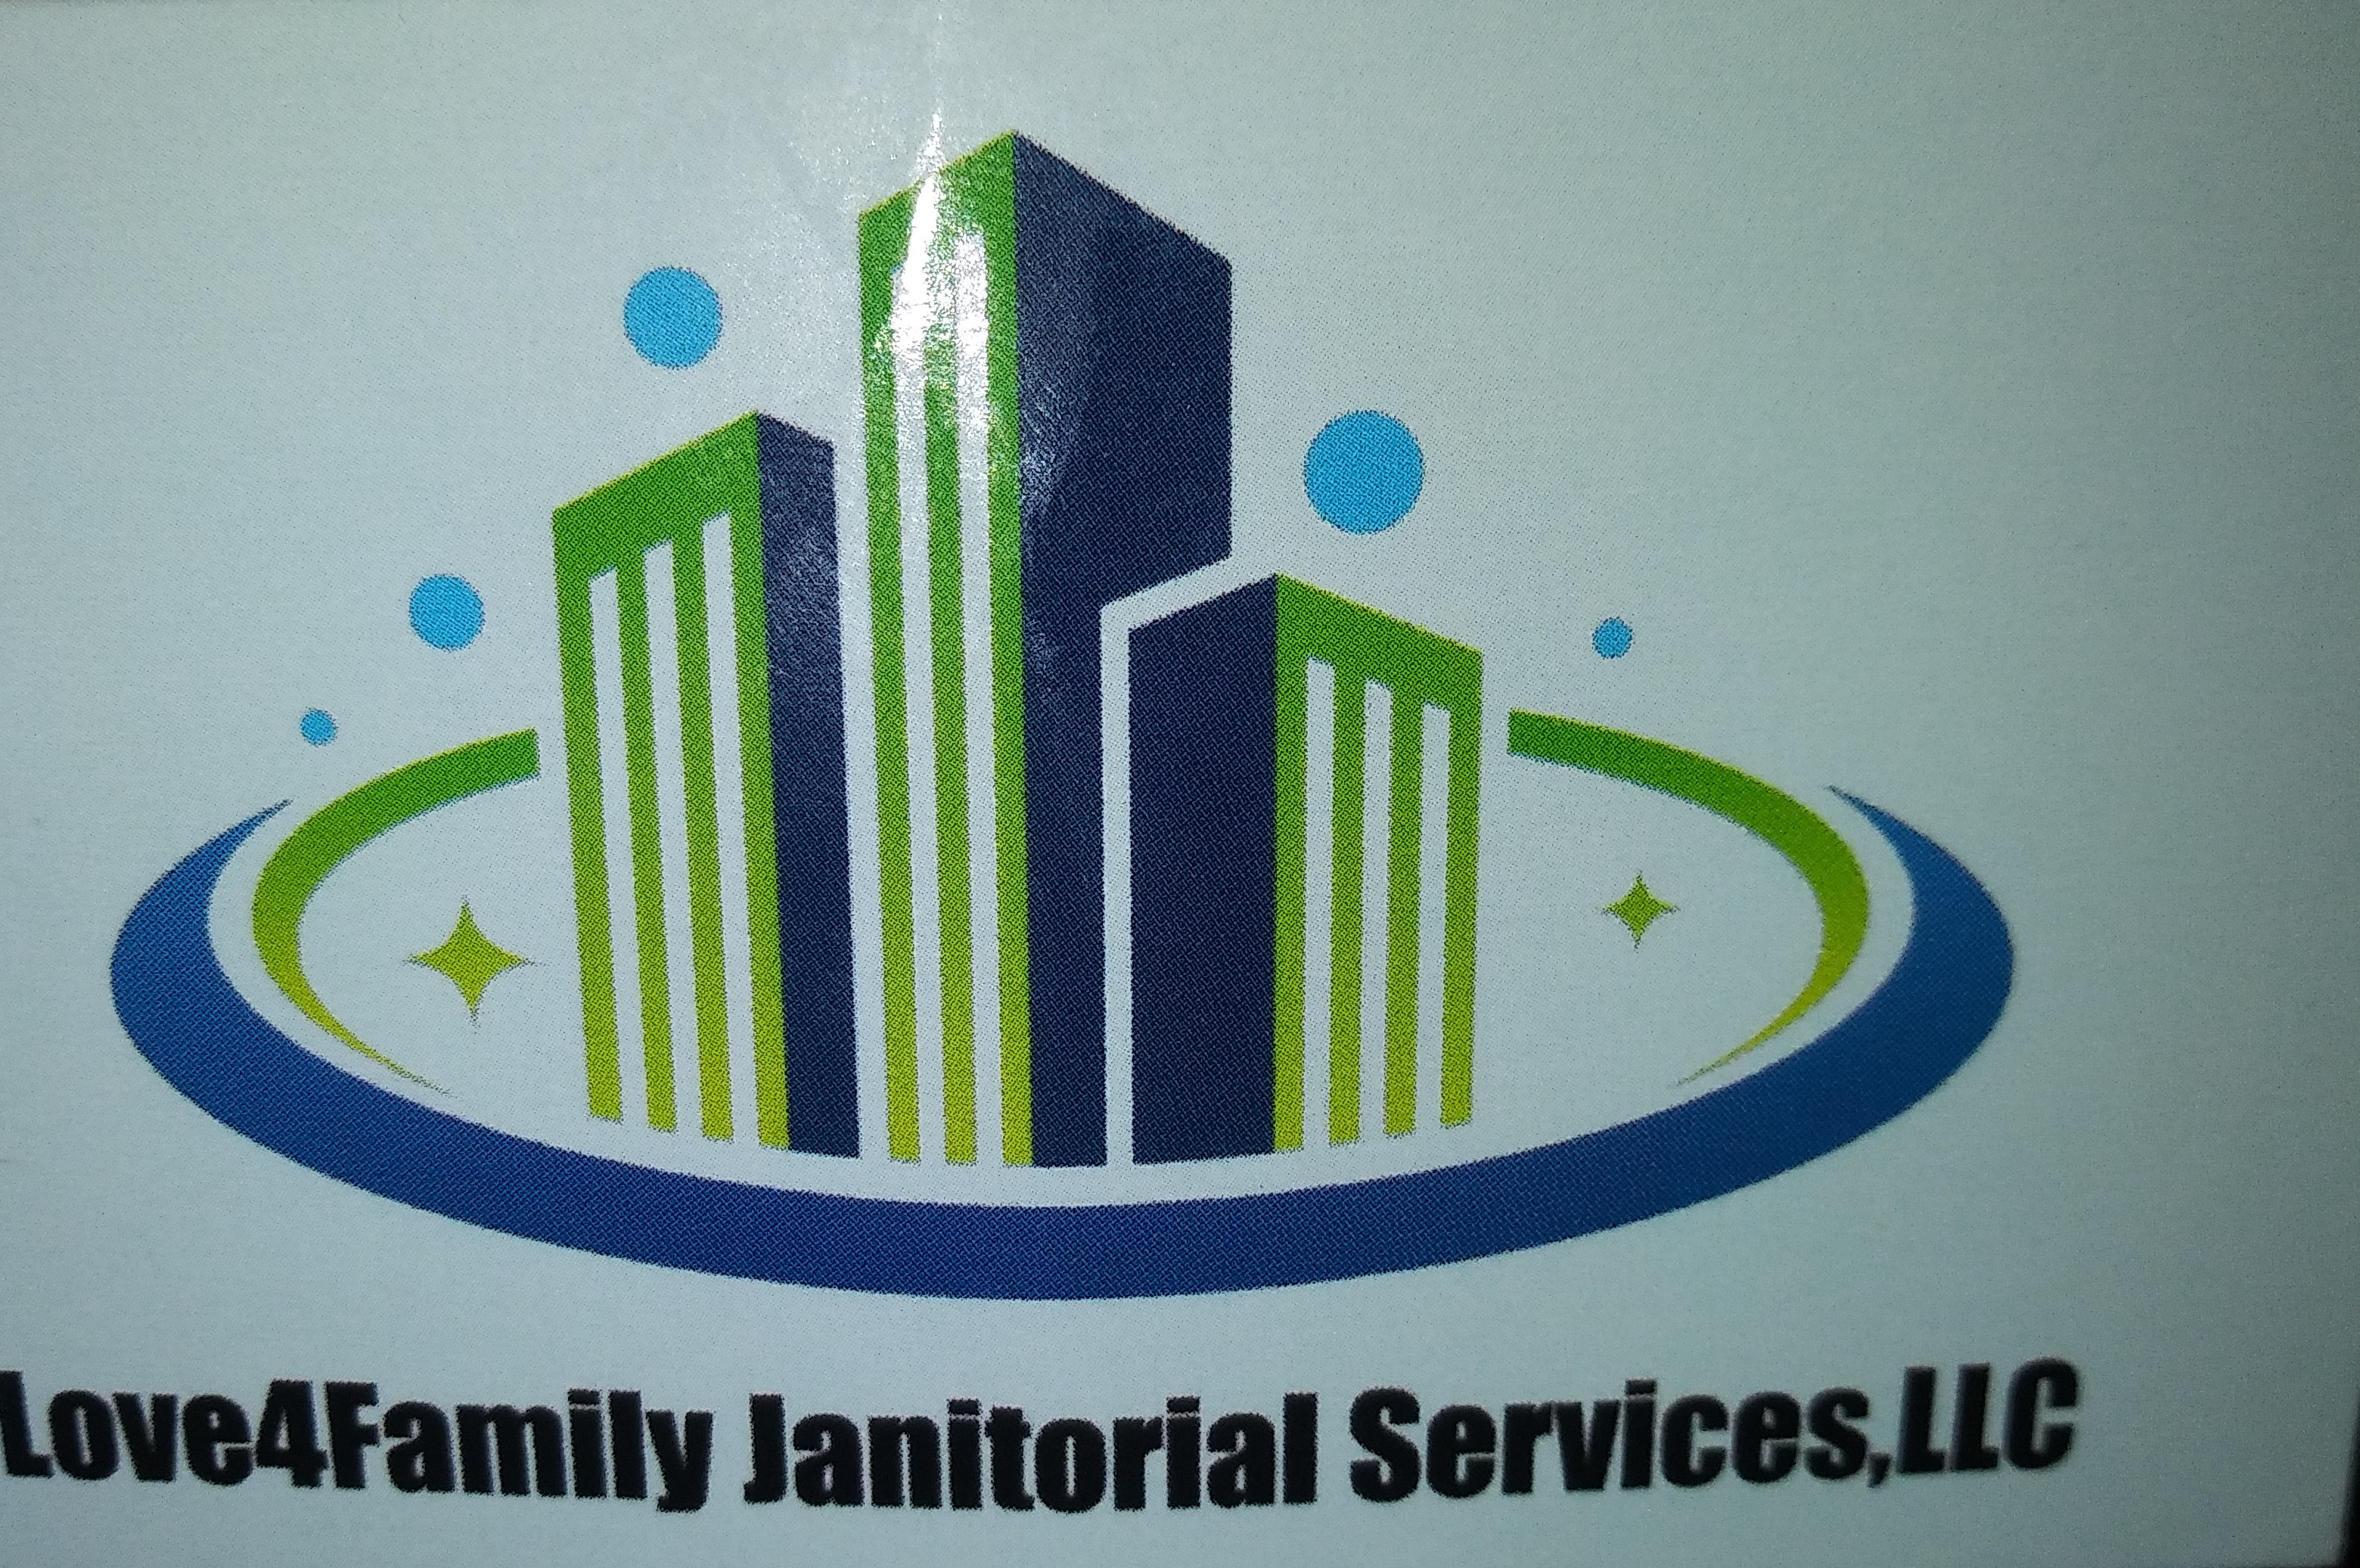 Love4family Janitorial Services